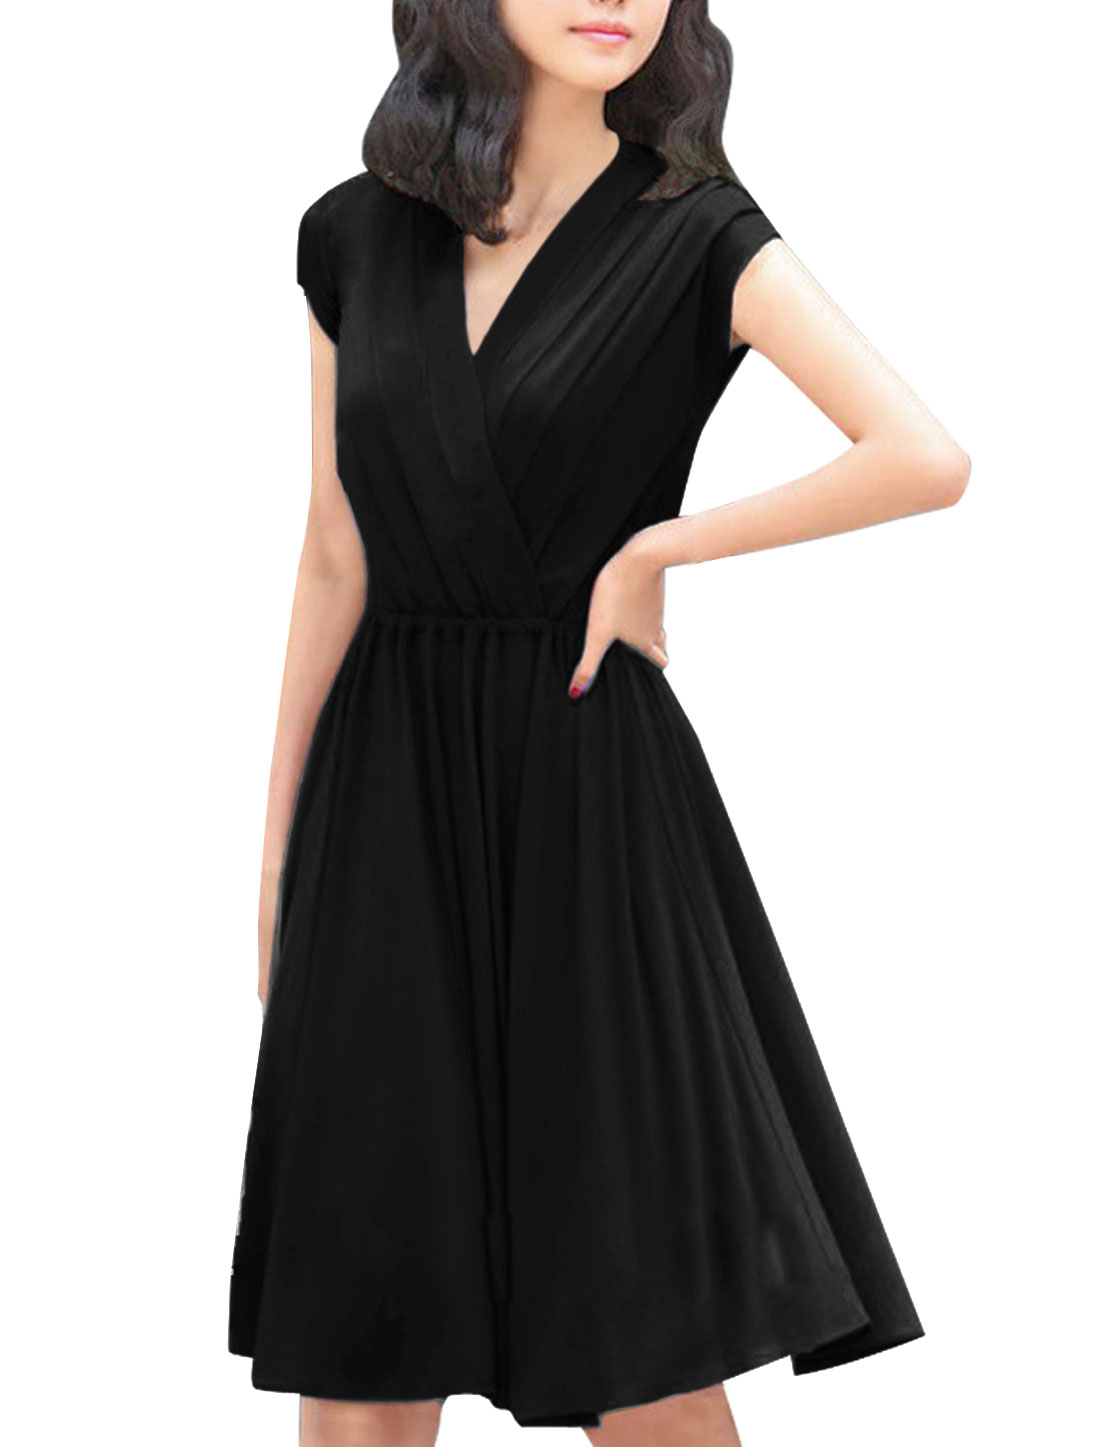 Women Newly Elastic Waist Pure Black Knee-Length Dress XS